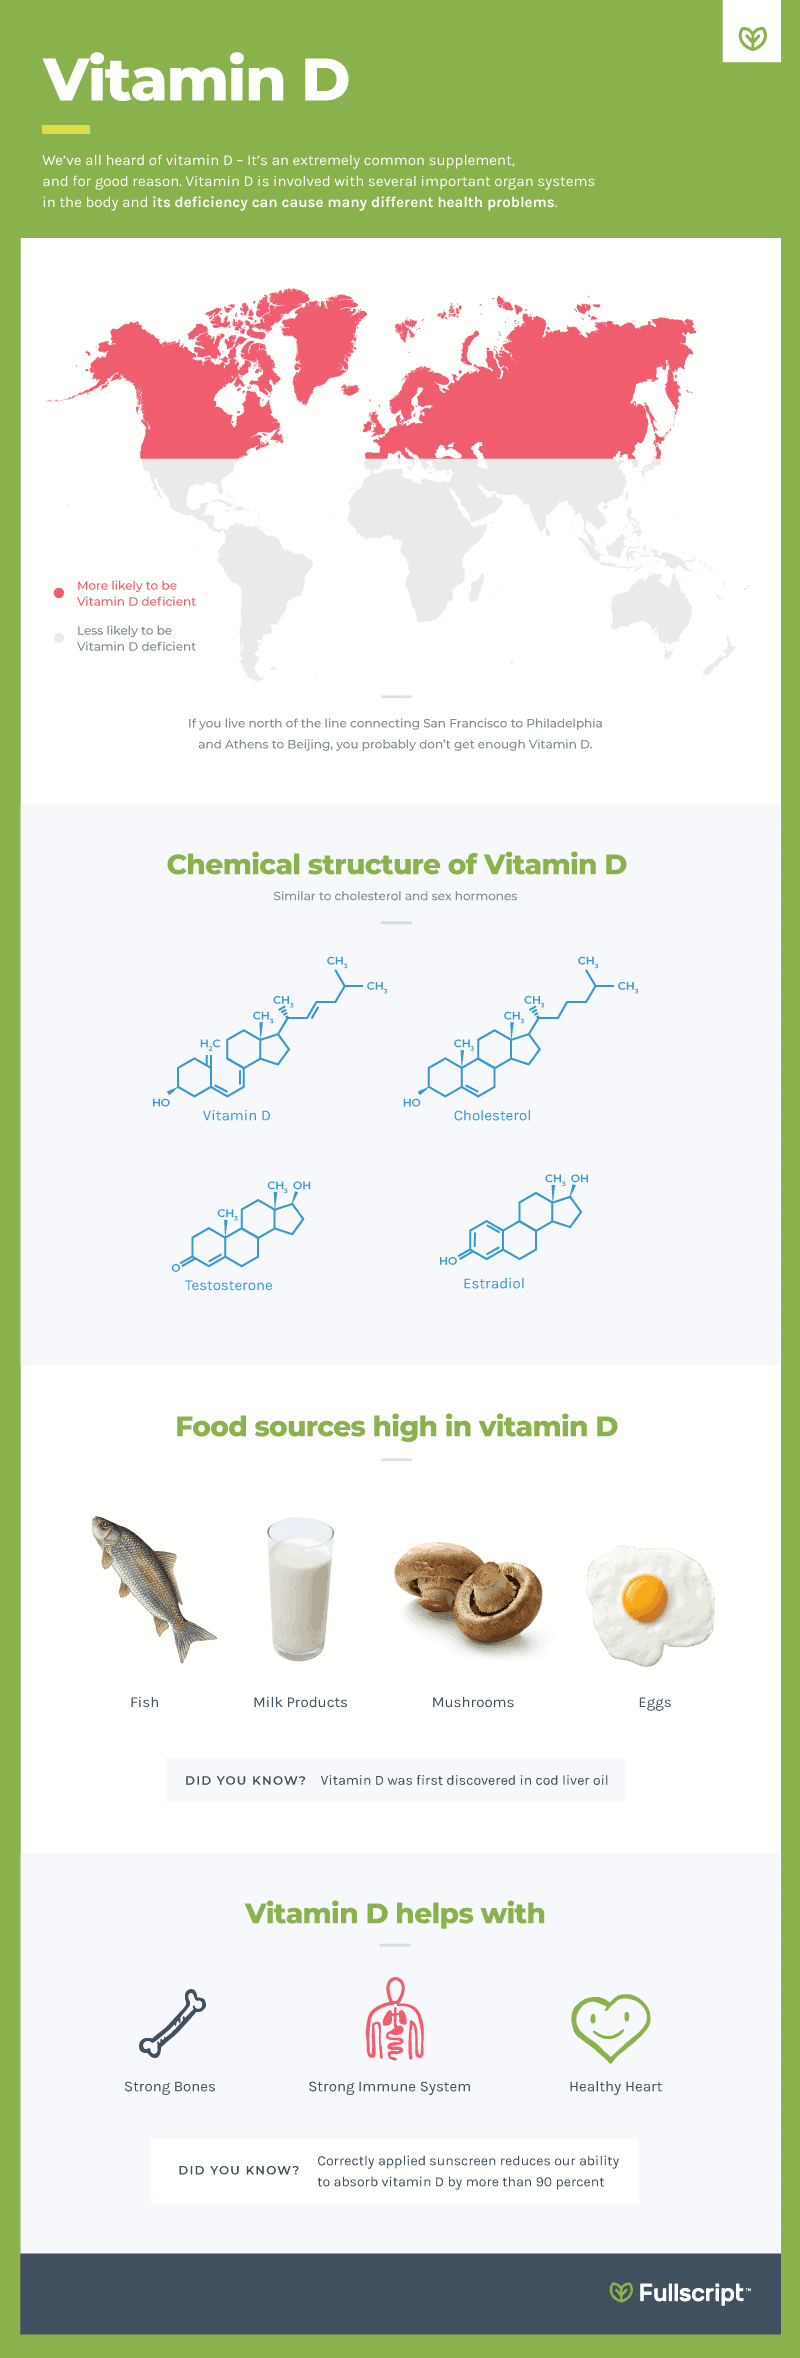 Supplements Vitamin D